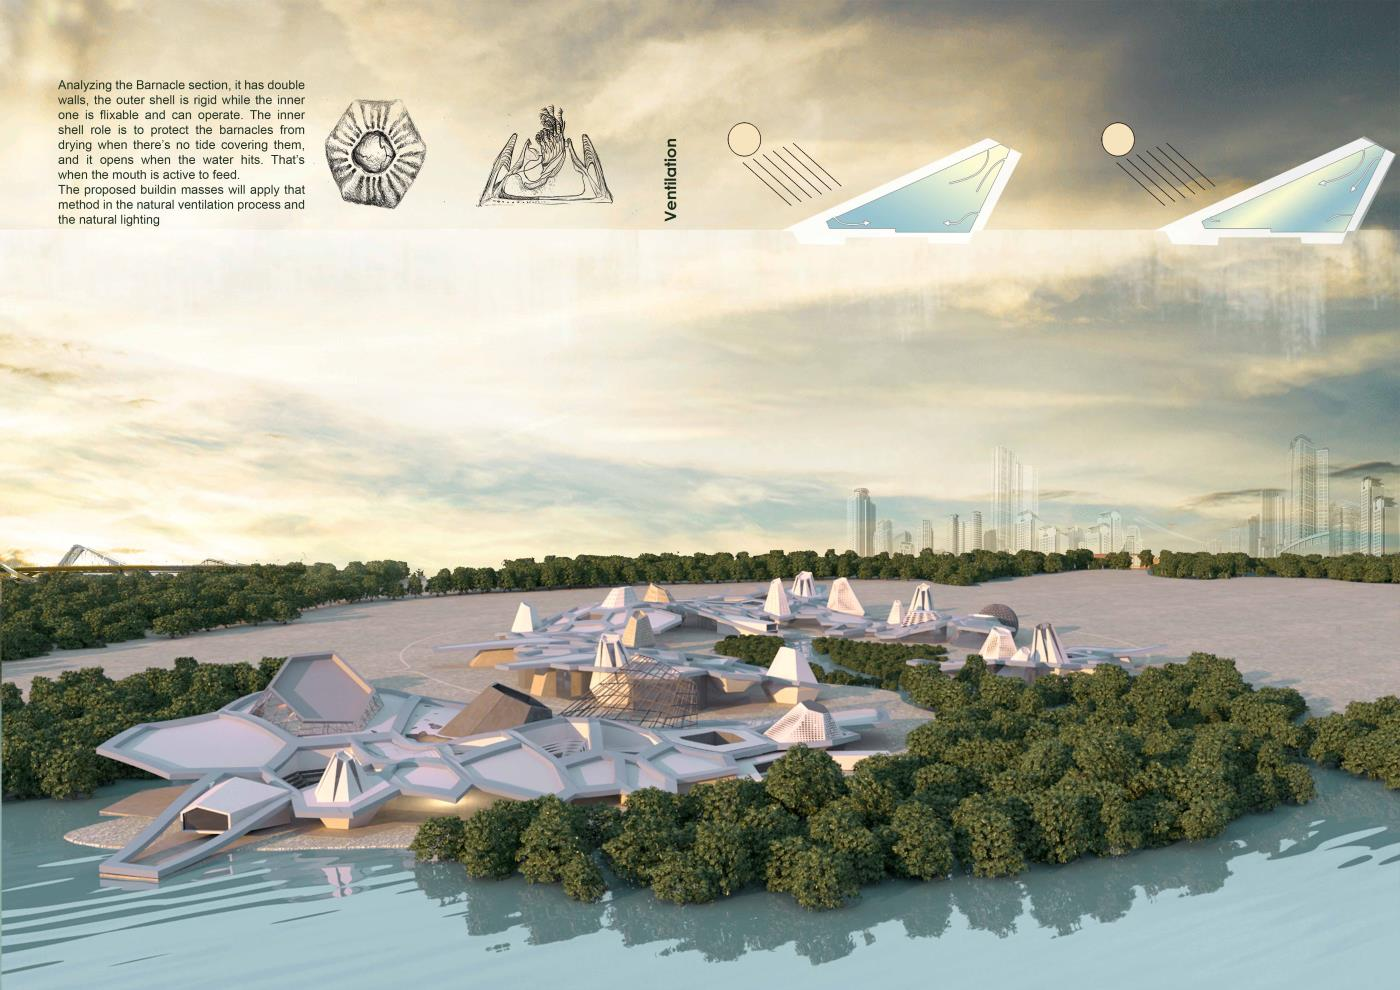 The Mangroves Science City